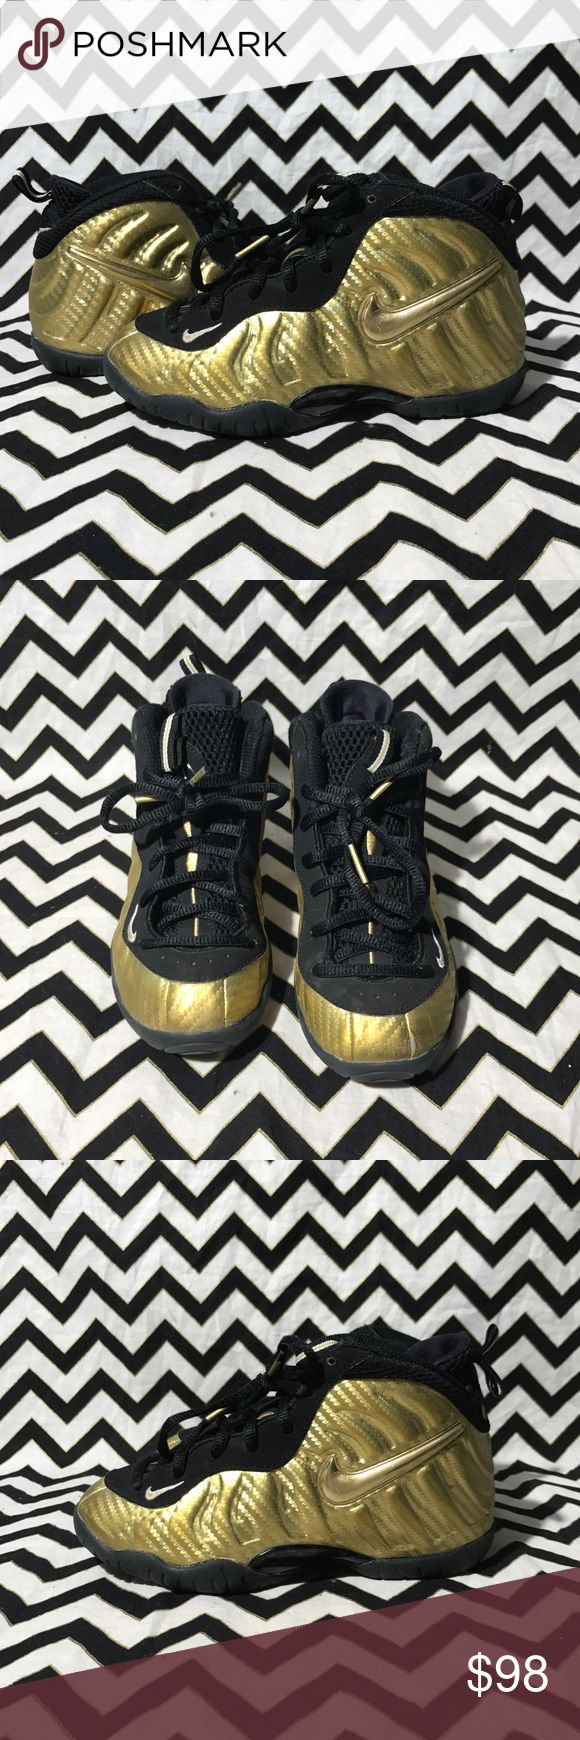 Gold foamposites Size 13c 8-10 condition Nike Shoes Sneakers